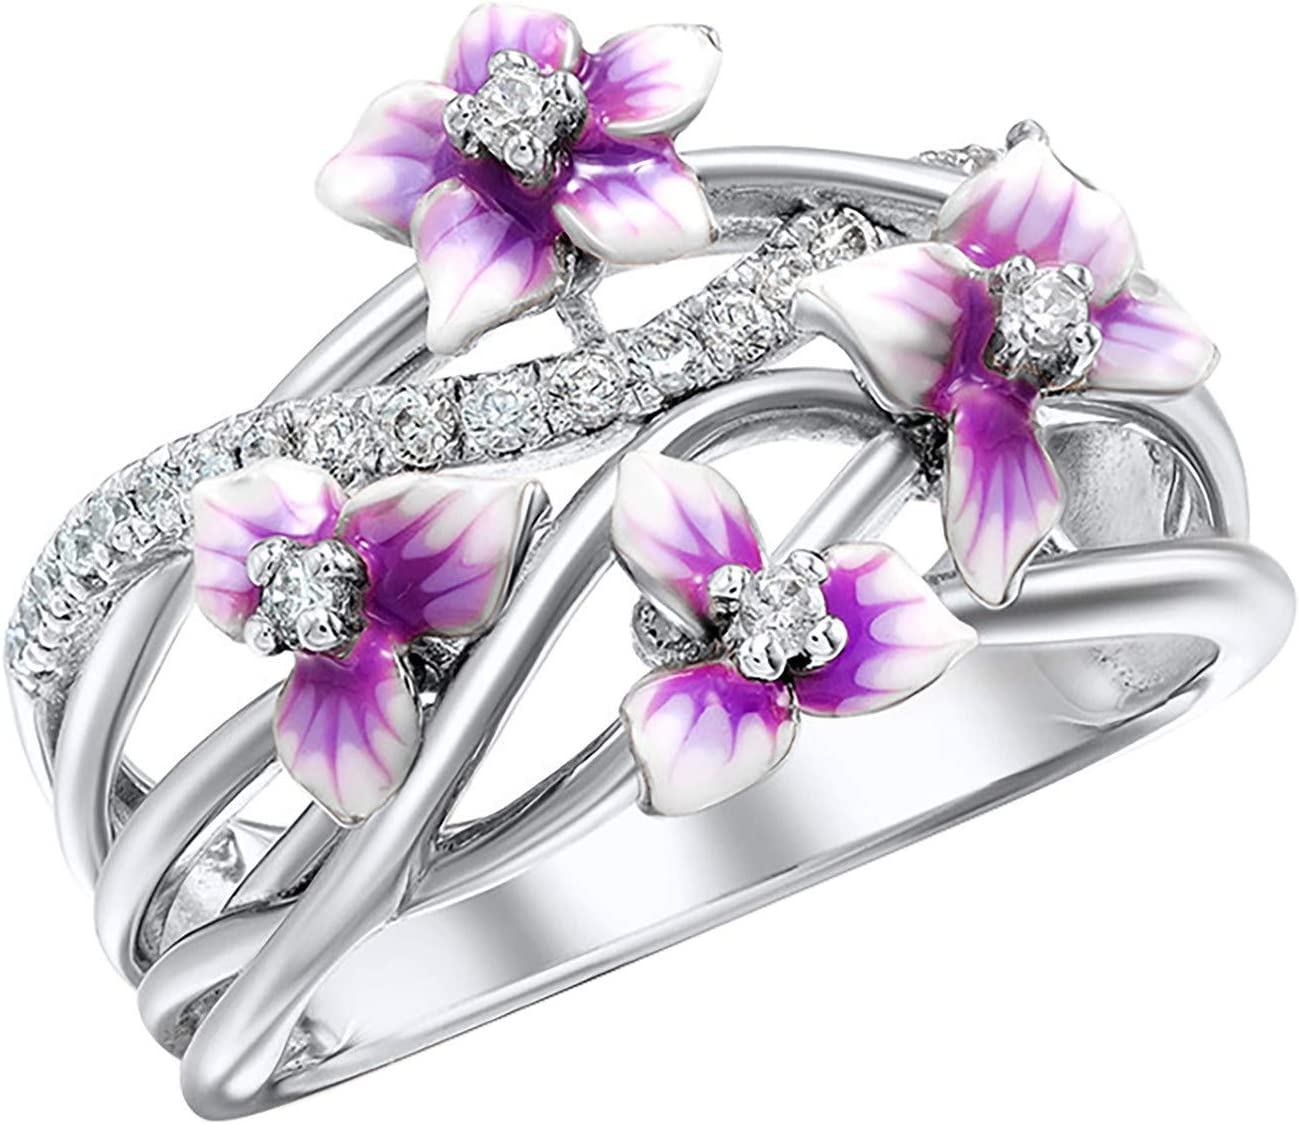 Violet Flower Personality Ring for Women Simulated Diamond Ring Crystals Rhinestone Finger Rings High Polish Resistant Comfort Fit Wedding Band Jewelry